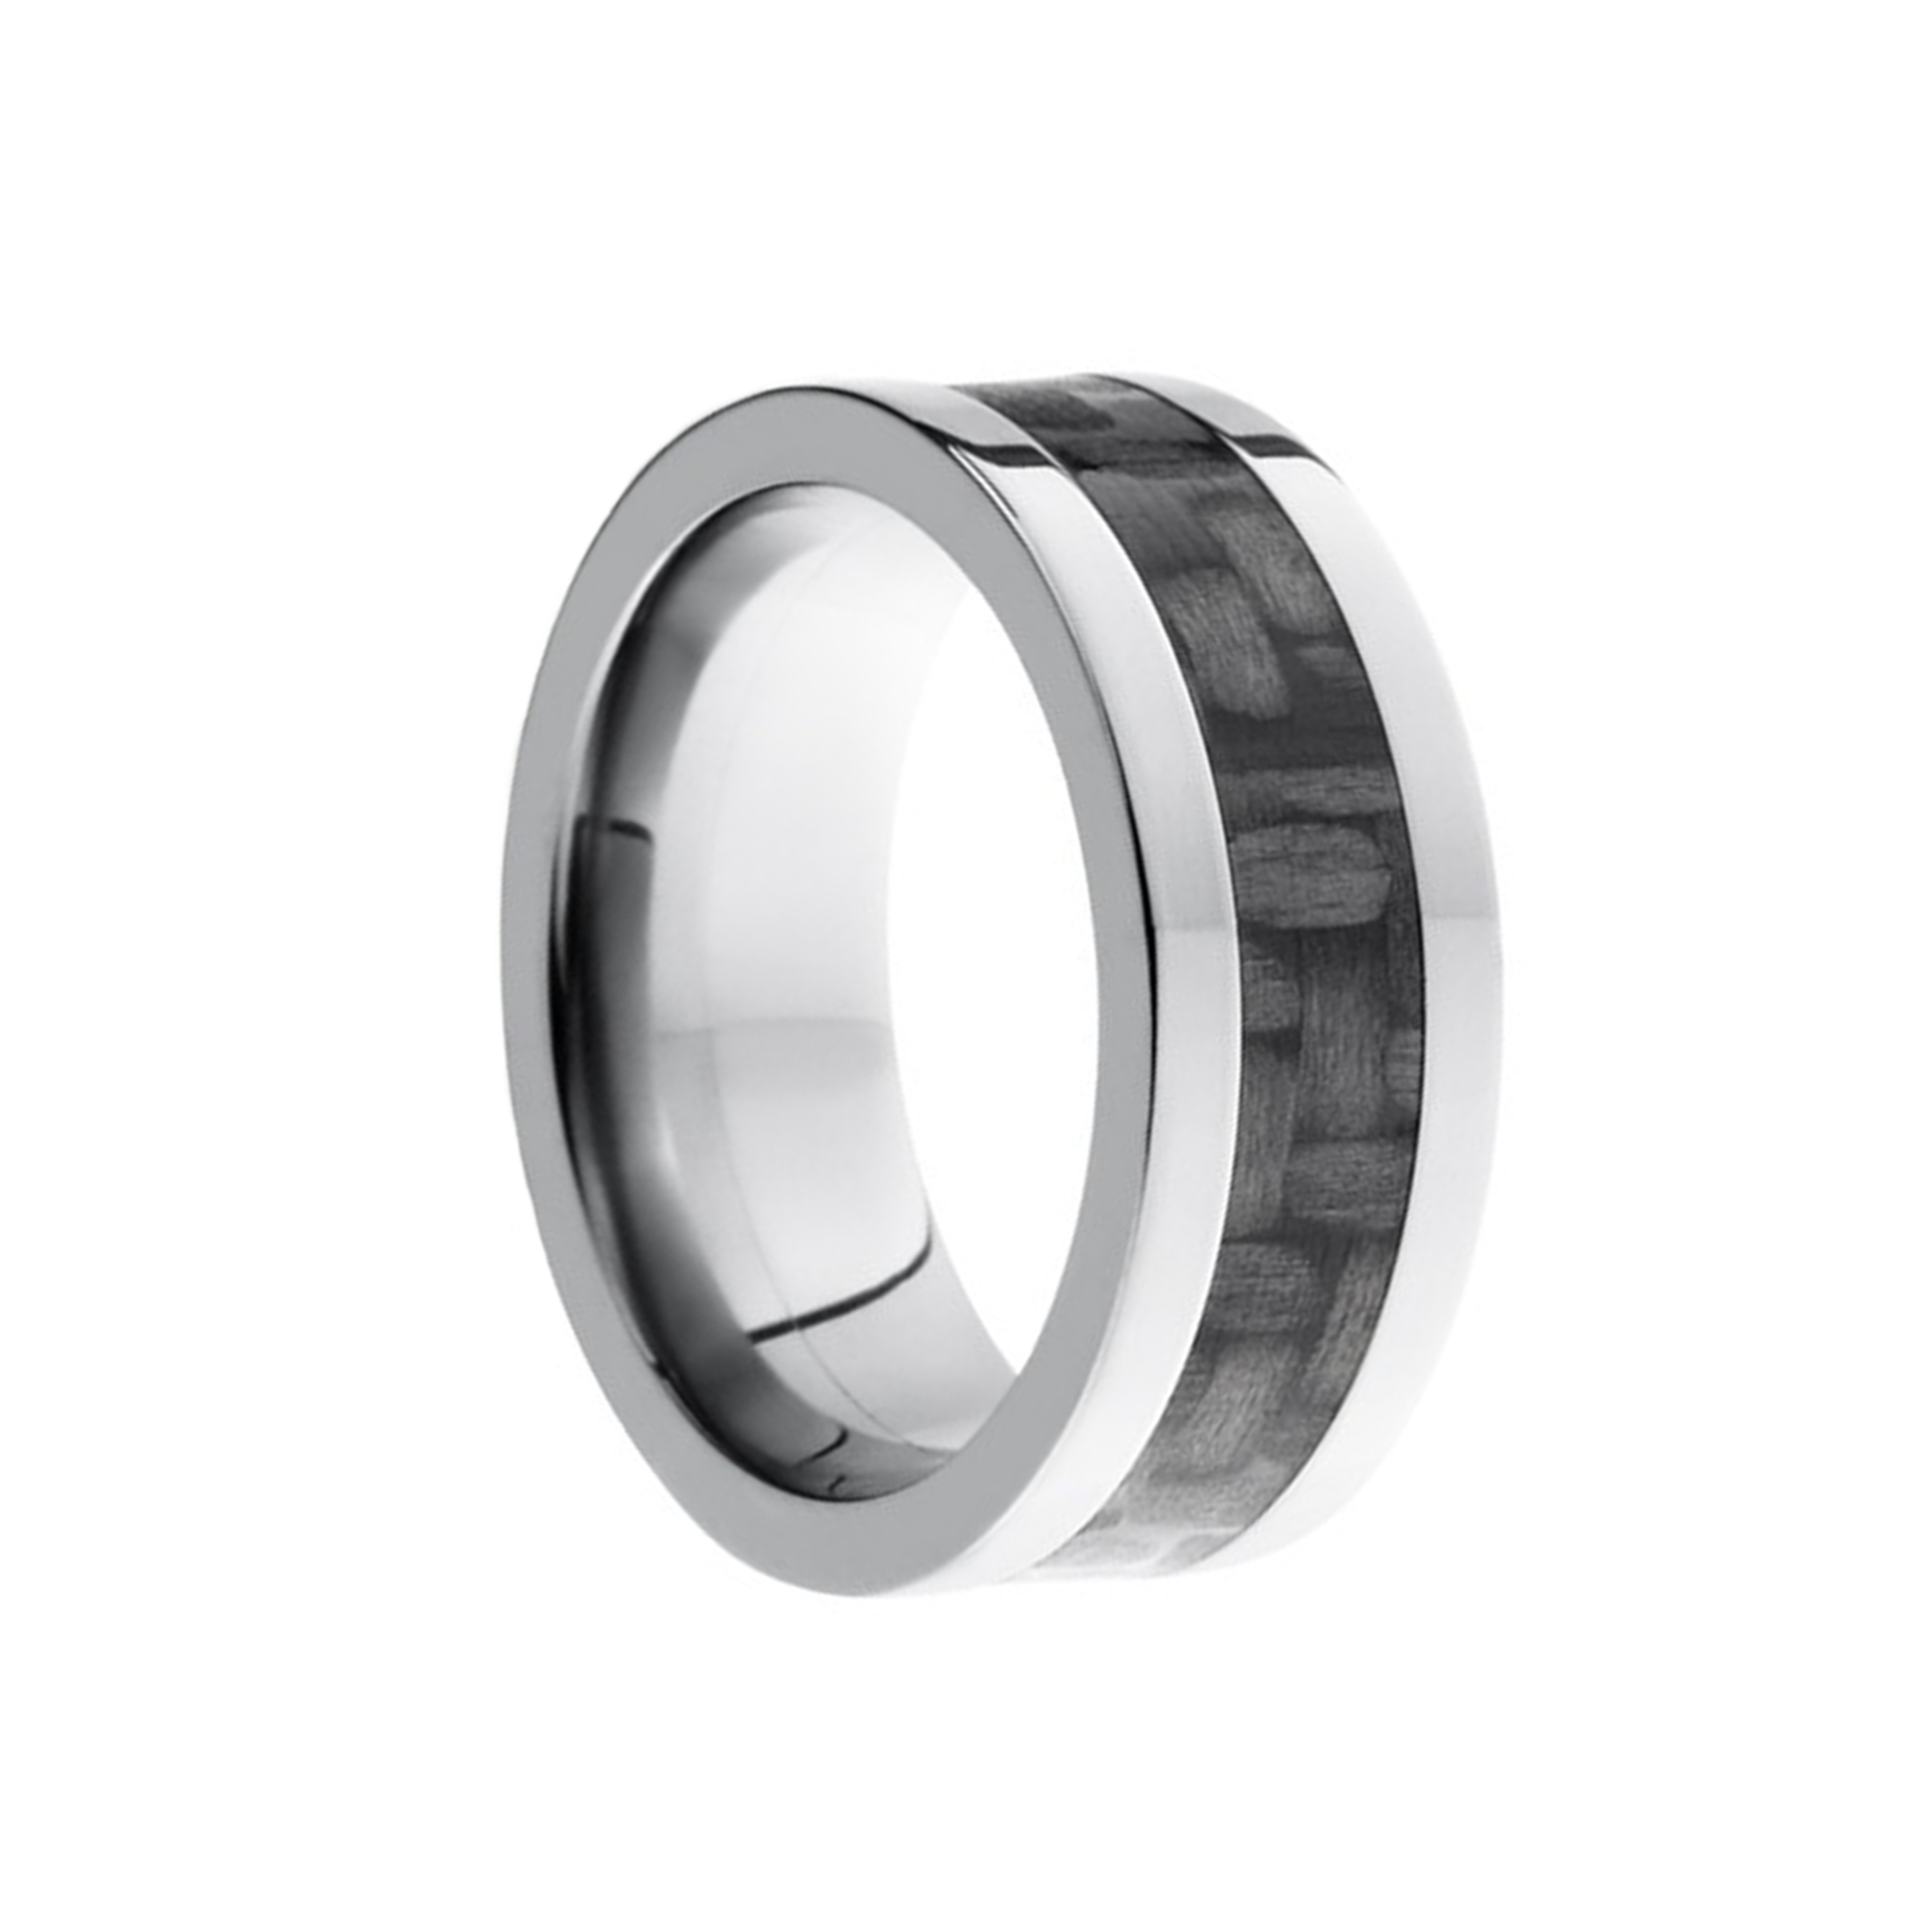 Woven Polished Band